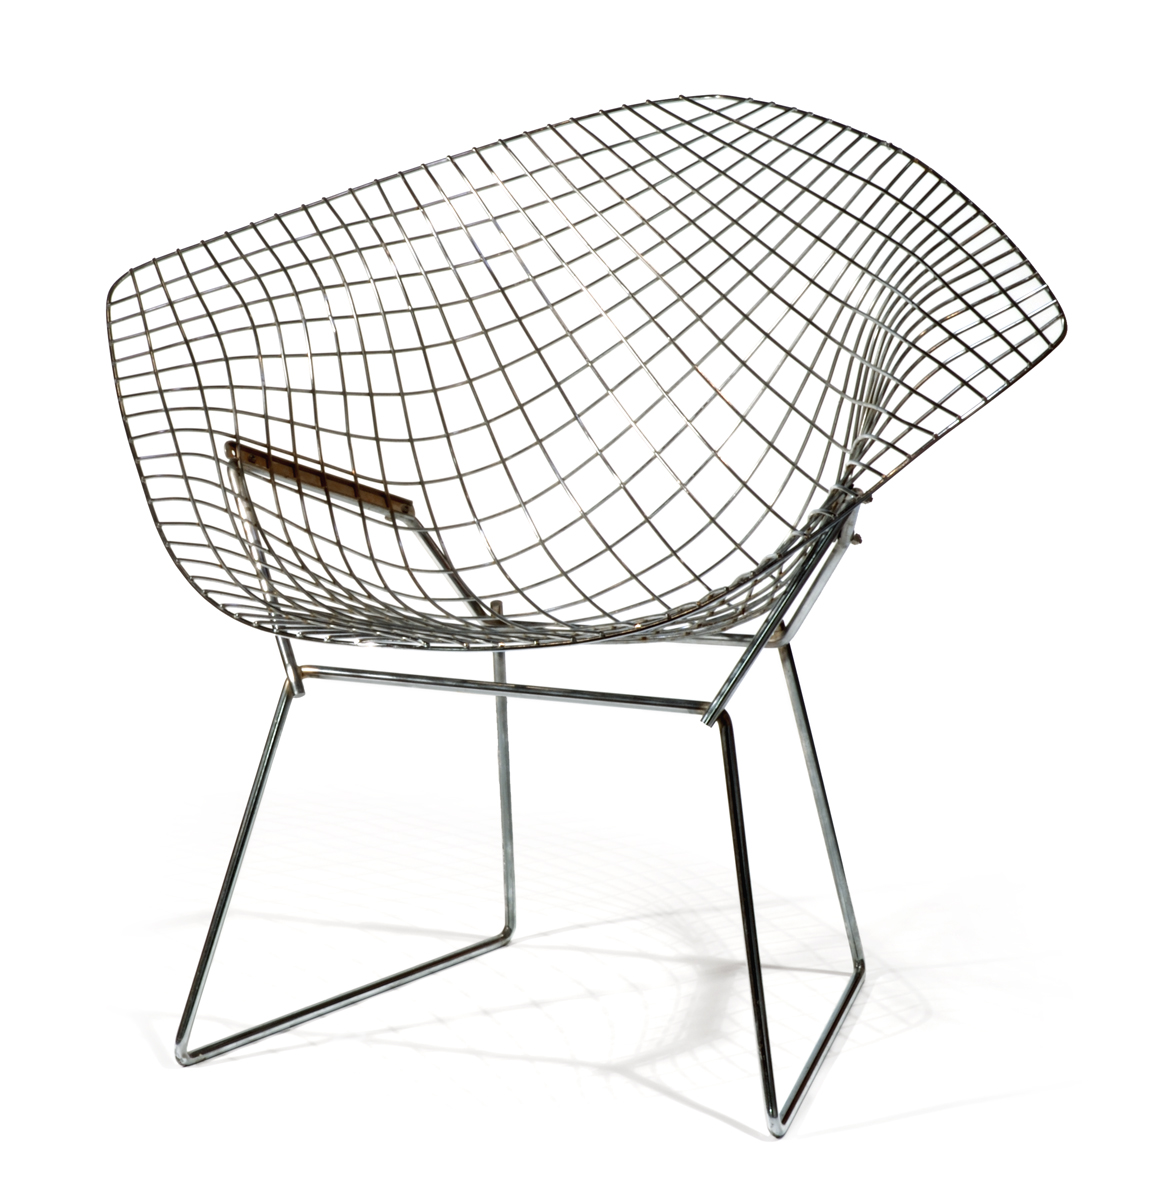 Bertoia diamond chair dimensions - Diamond Chair No 421